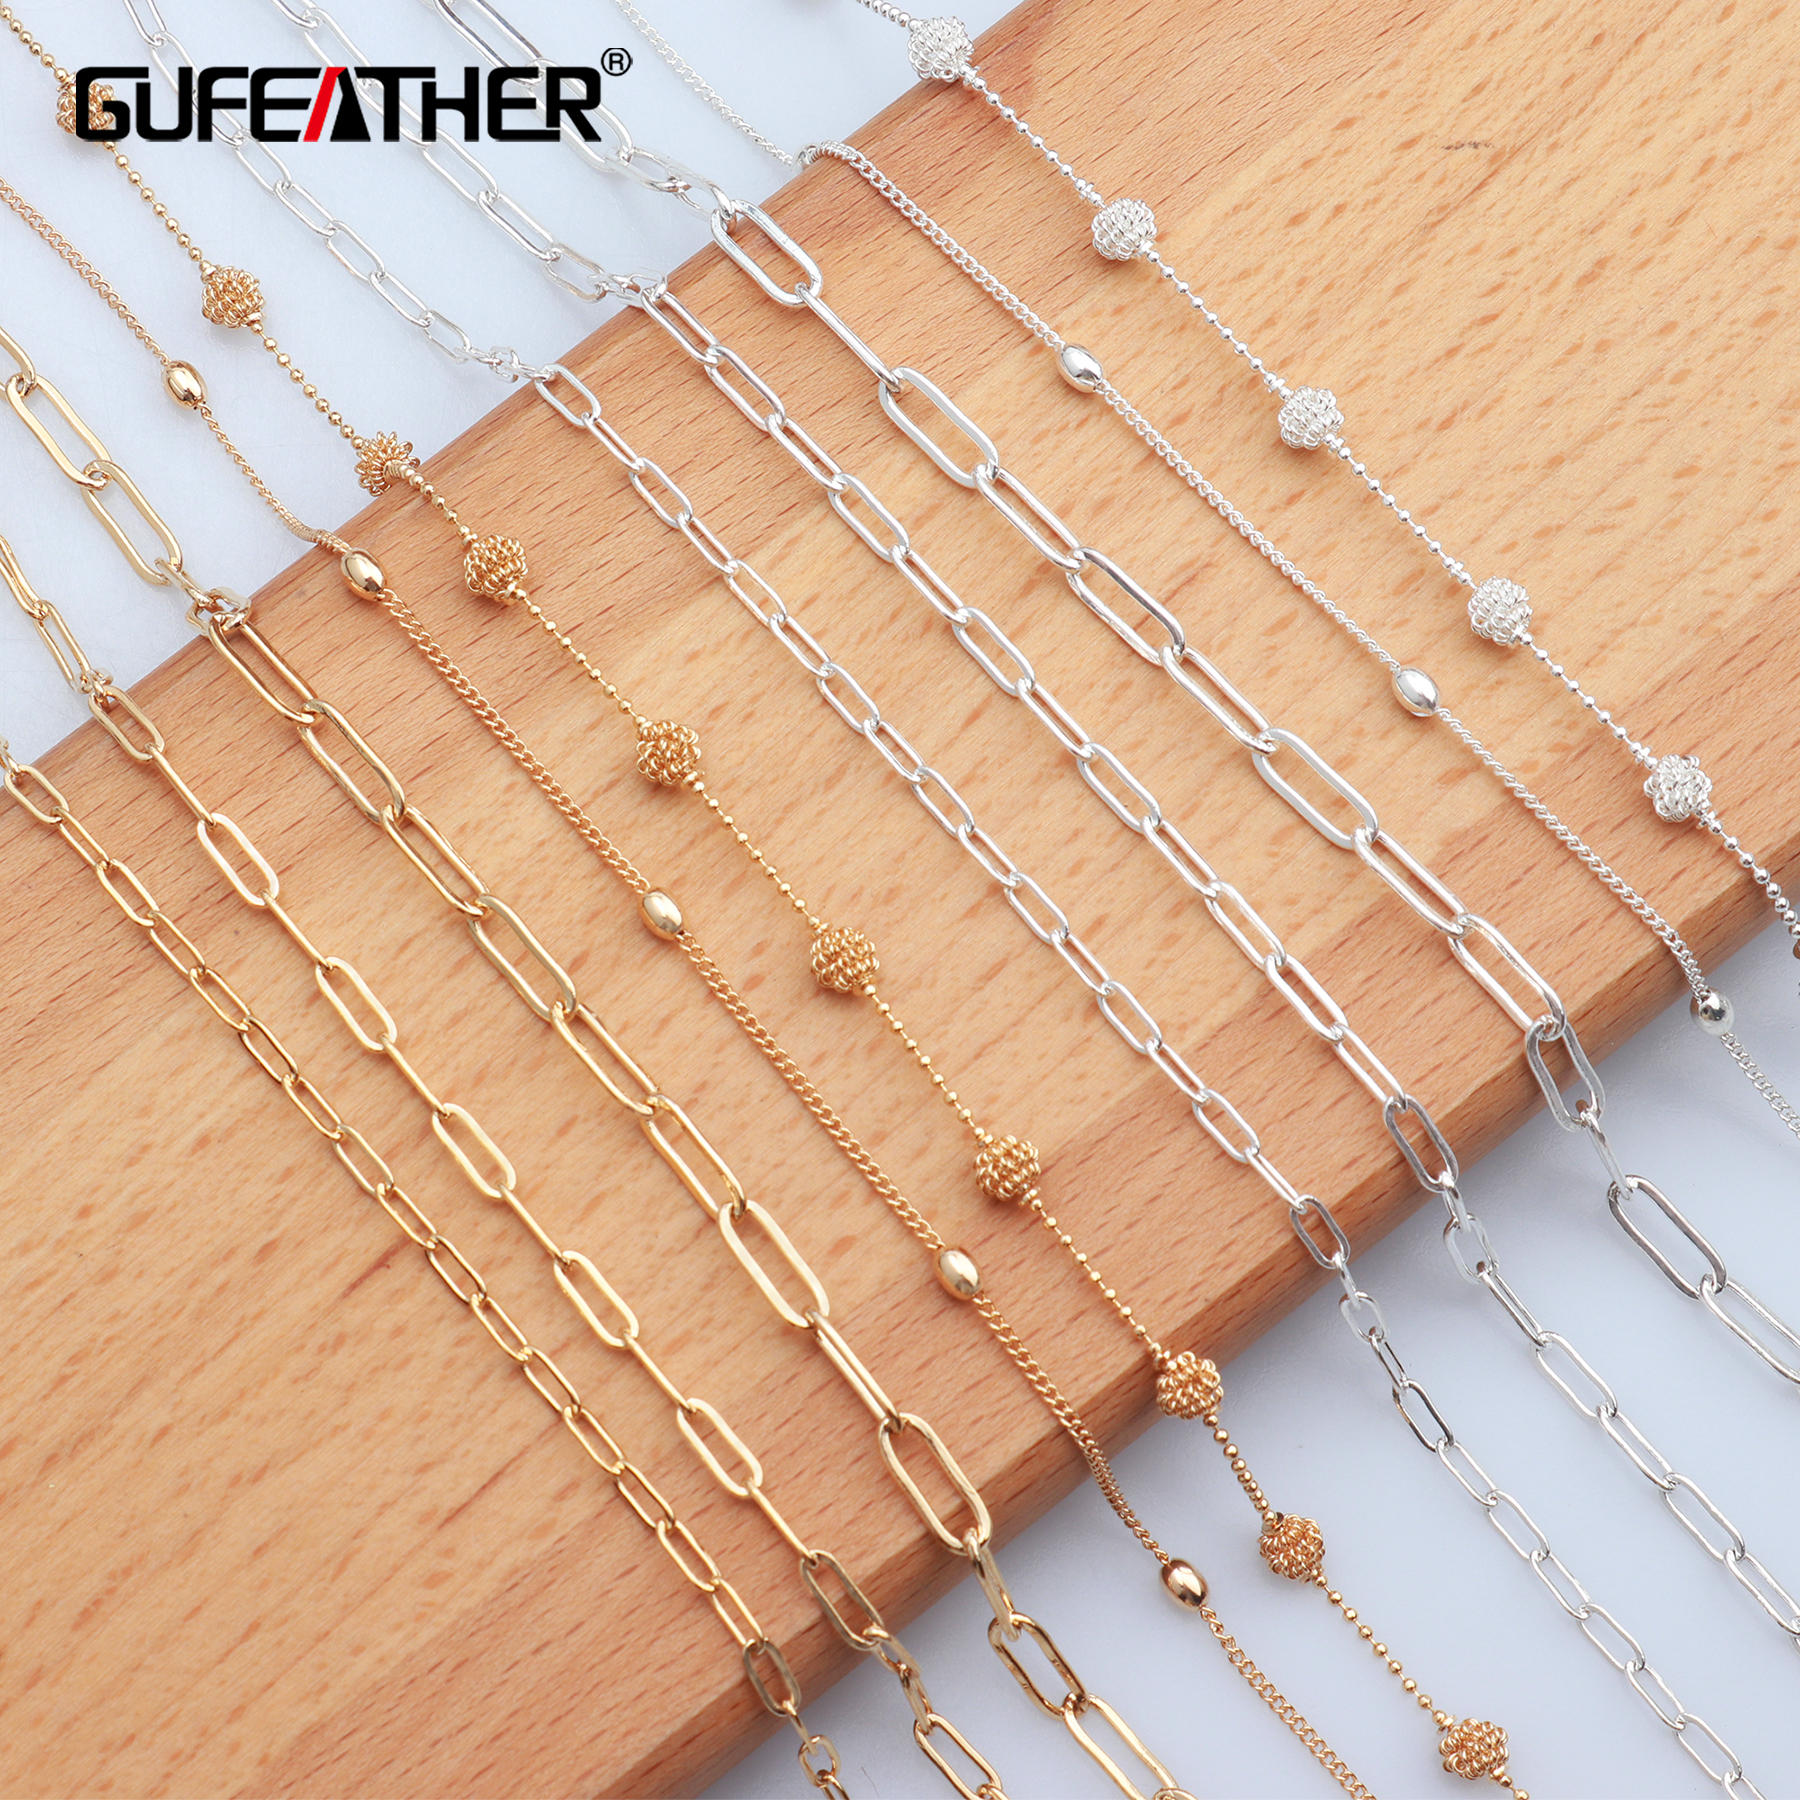 GUFEATHER C35,jewelry Making,silver Gold Chains,necklace For Women,diy Jewelry,copper Metal,charms,jewelry Findings,3m/lot